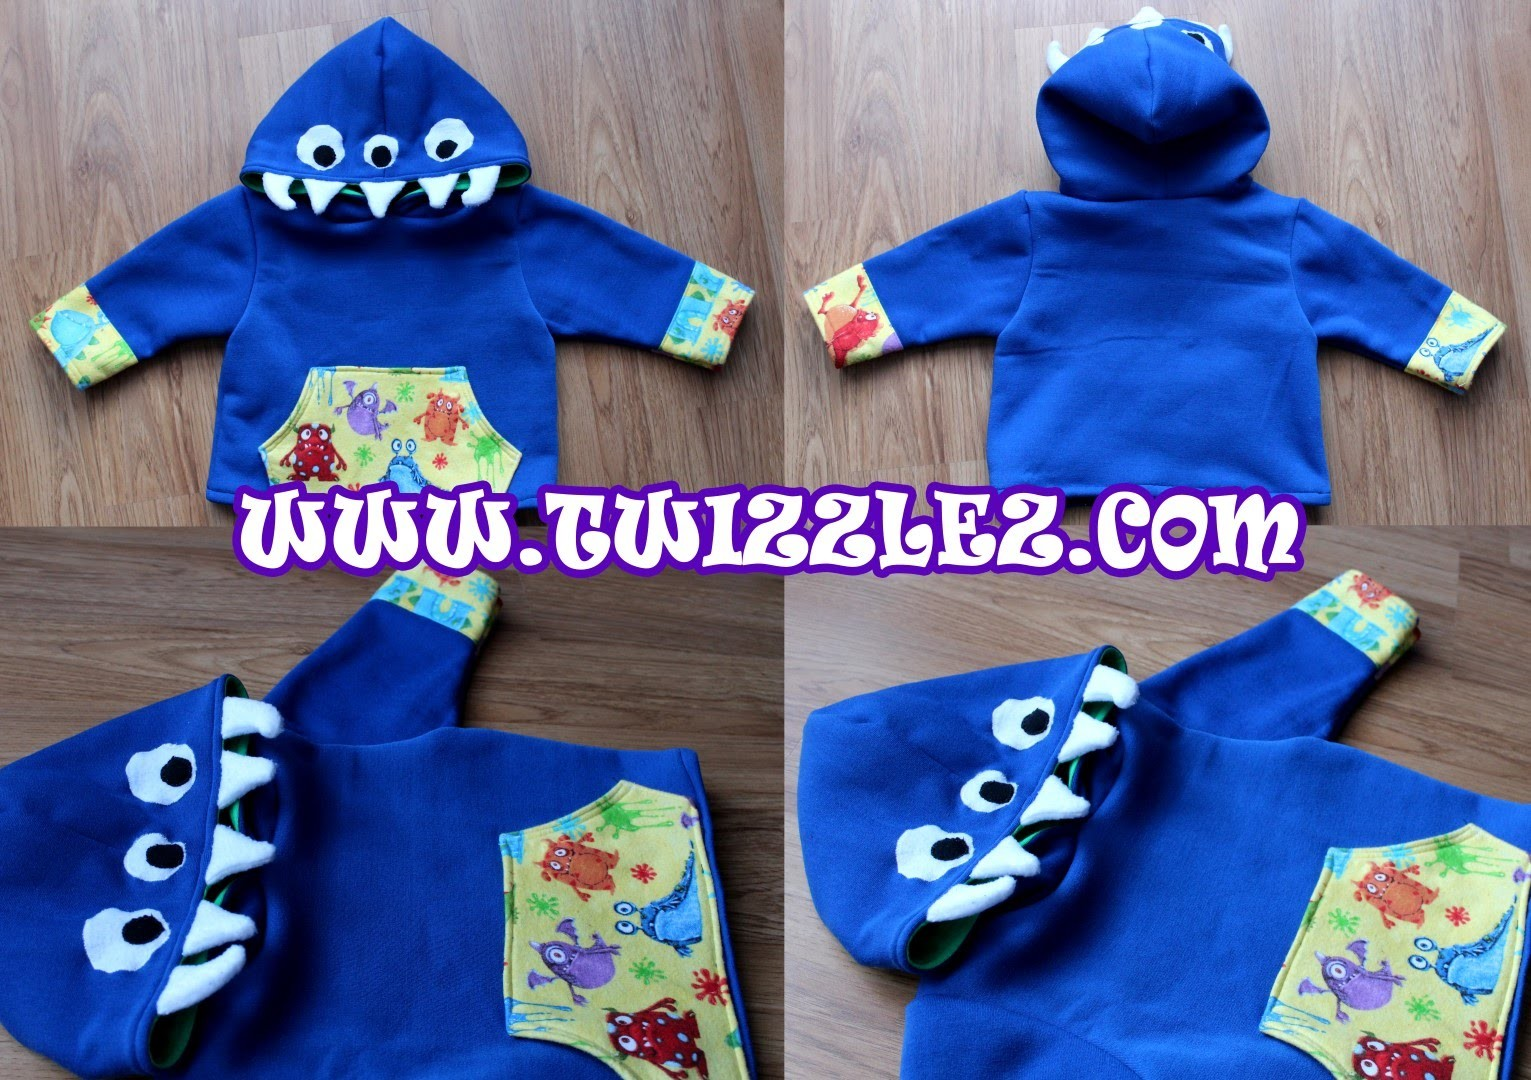 How to Sew. Make a Kids Monster Hoodie | FREE Pattern Intermediate Sewing Tutorial | Twizzlez